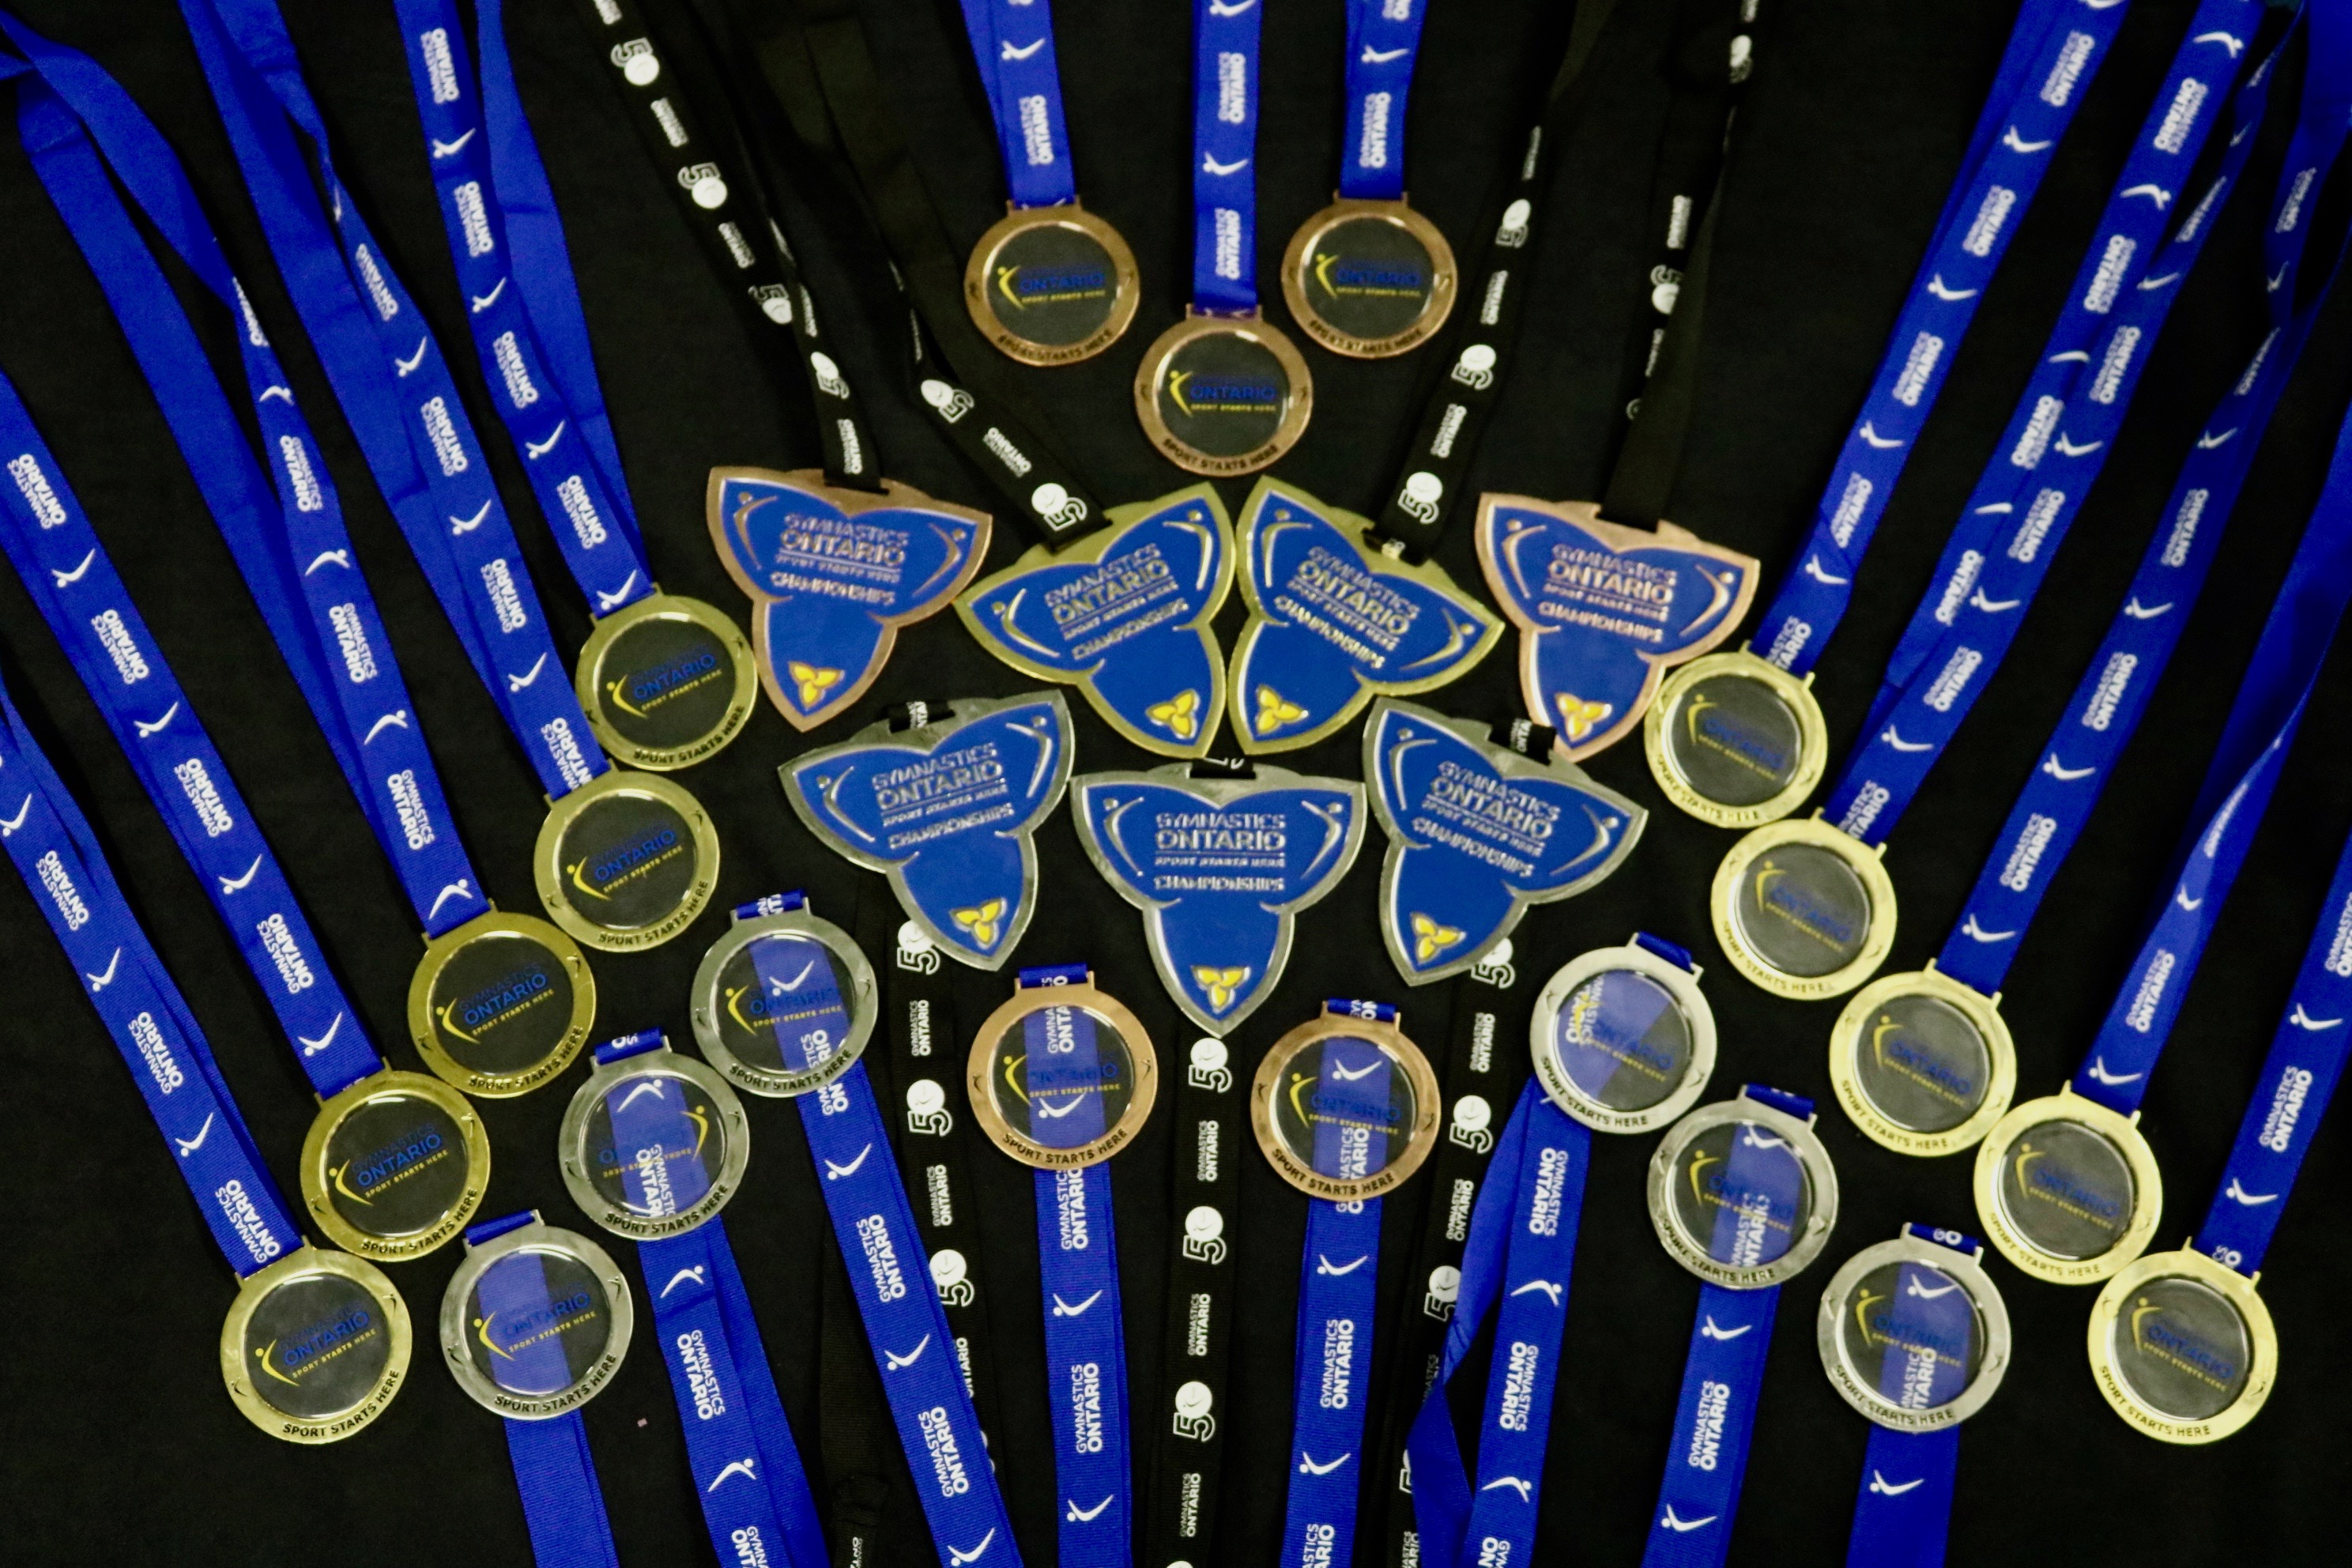 28 Medals at Ontario Provincial Championships